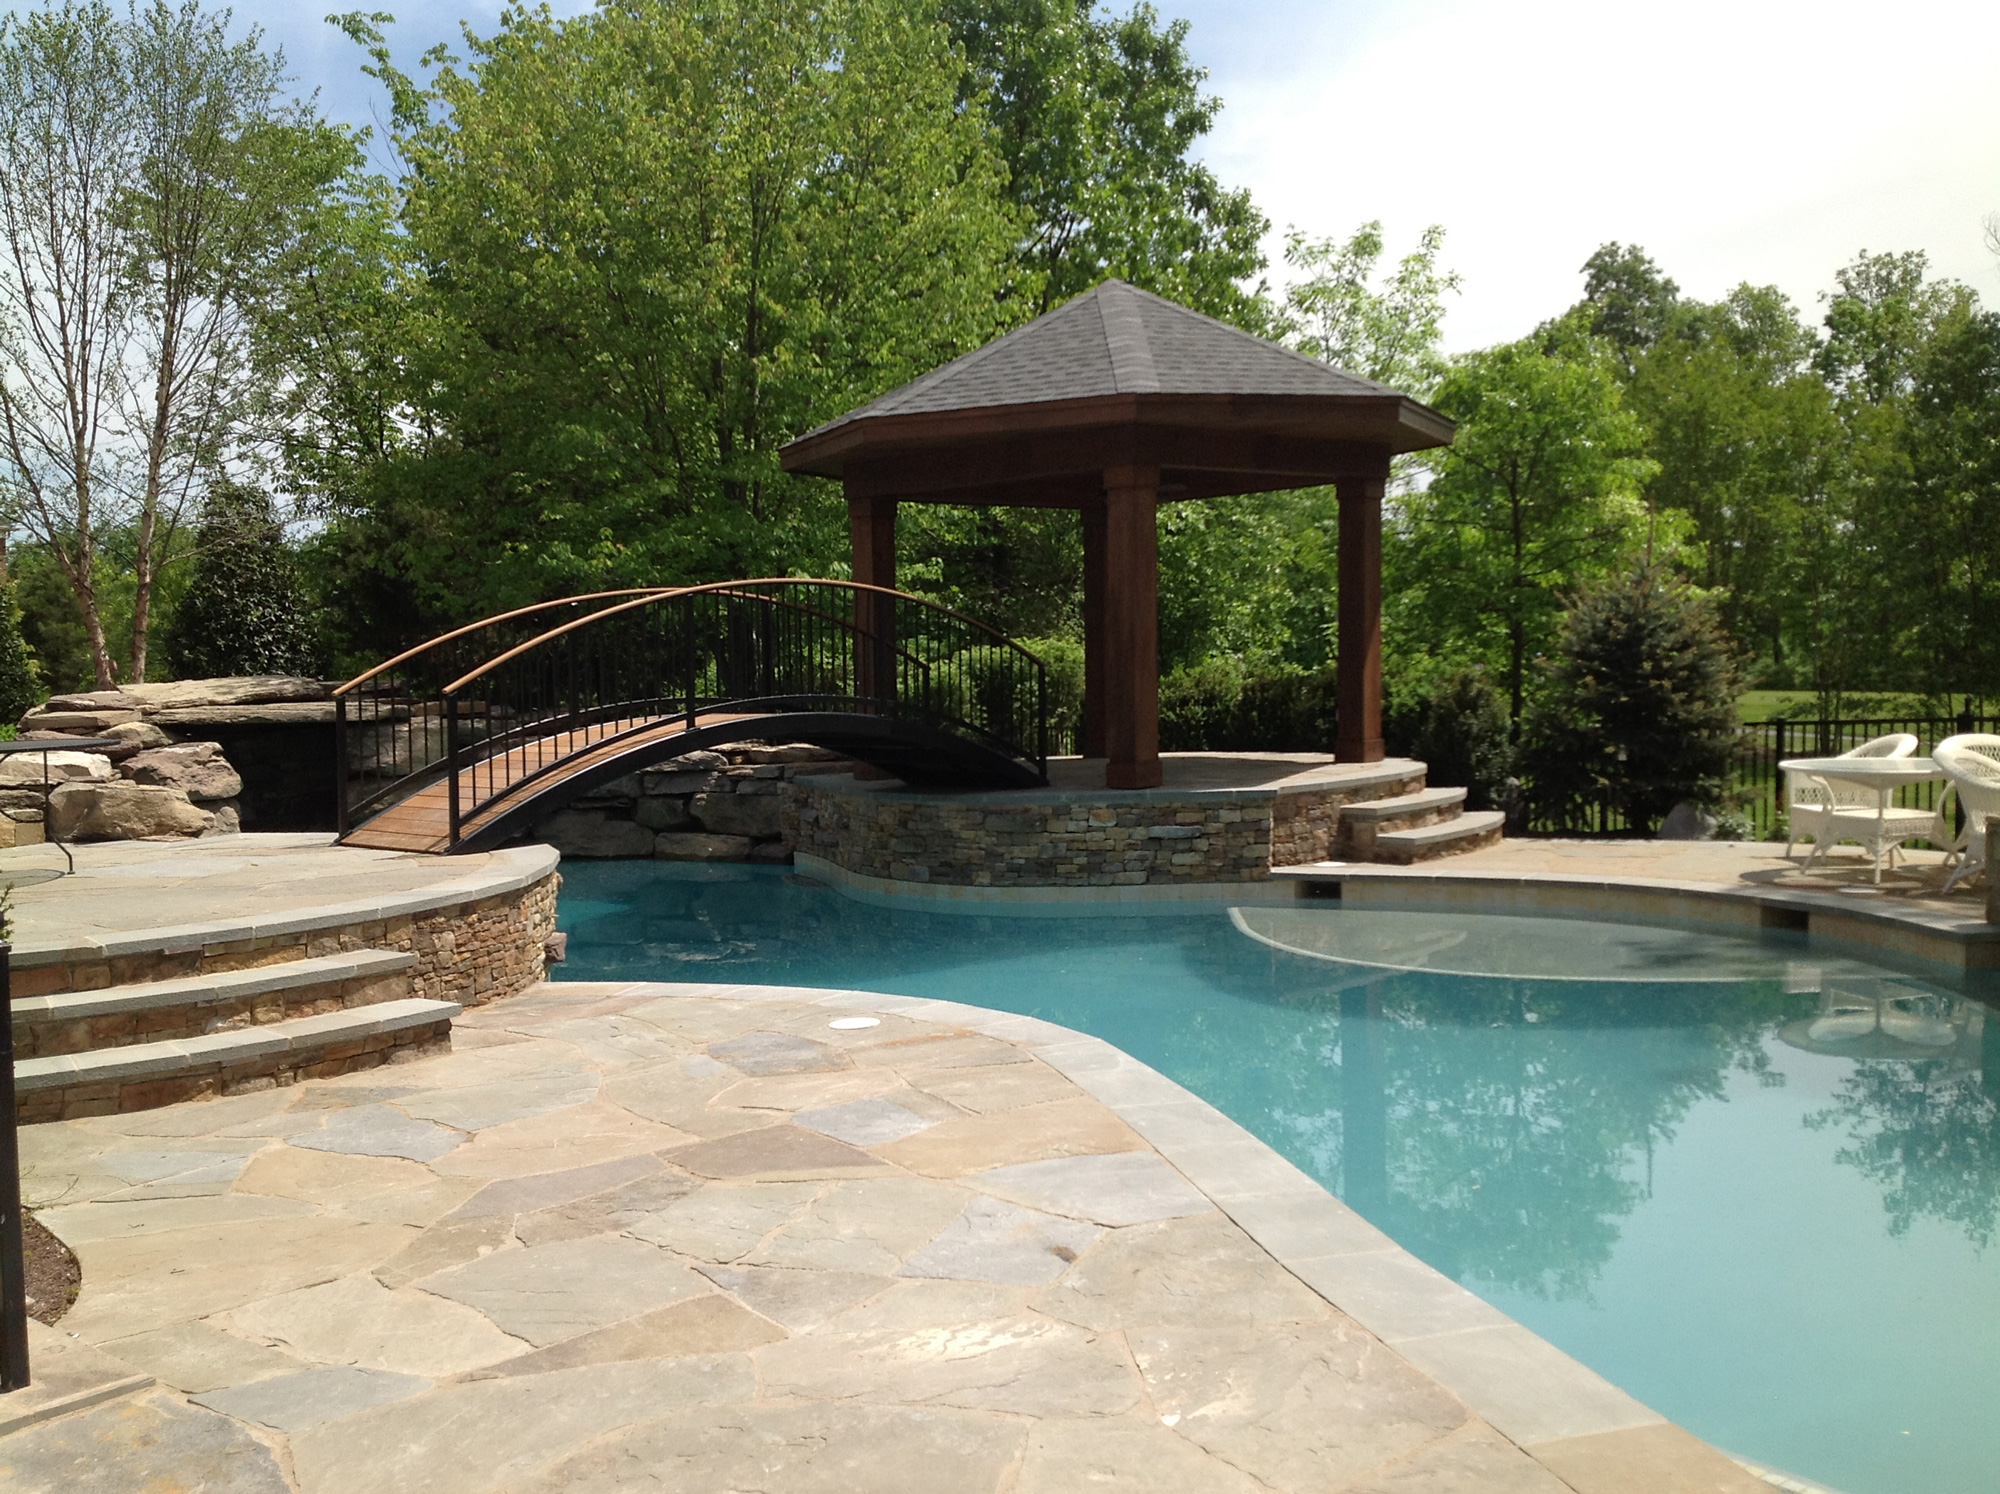 Swimming pool design in Northern VA- M&M Professional Landscaping